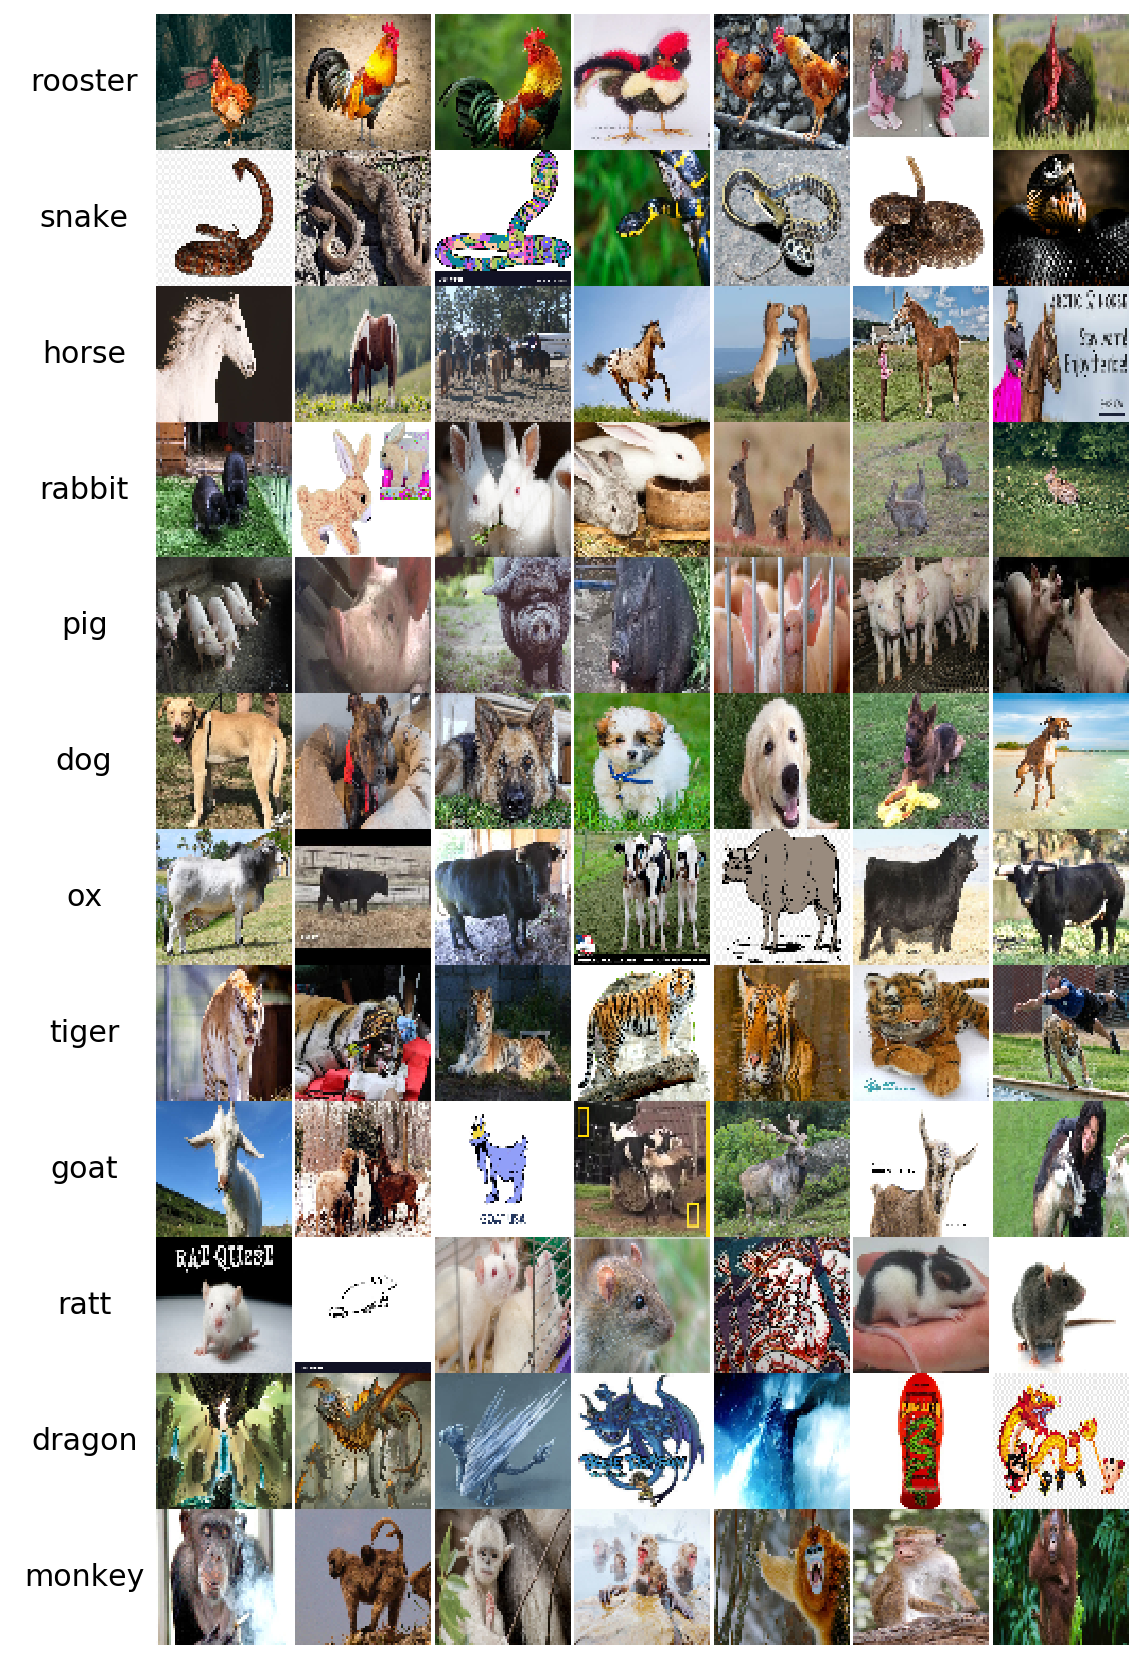 Chinese Zodiac Sign Classification Challenge With Pytorch By M Rake Linggar A Towards Data Science